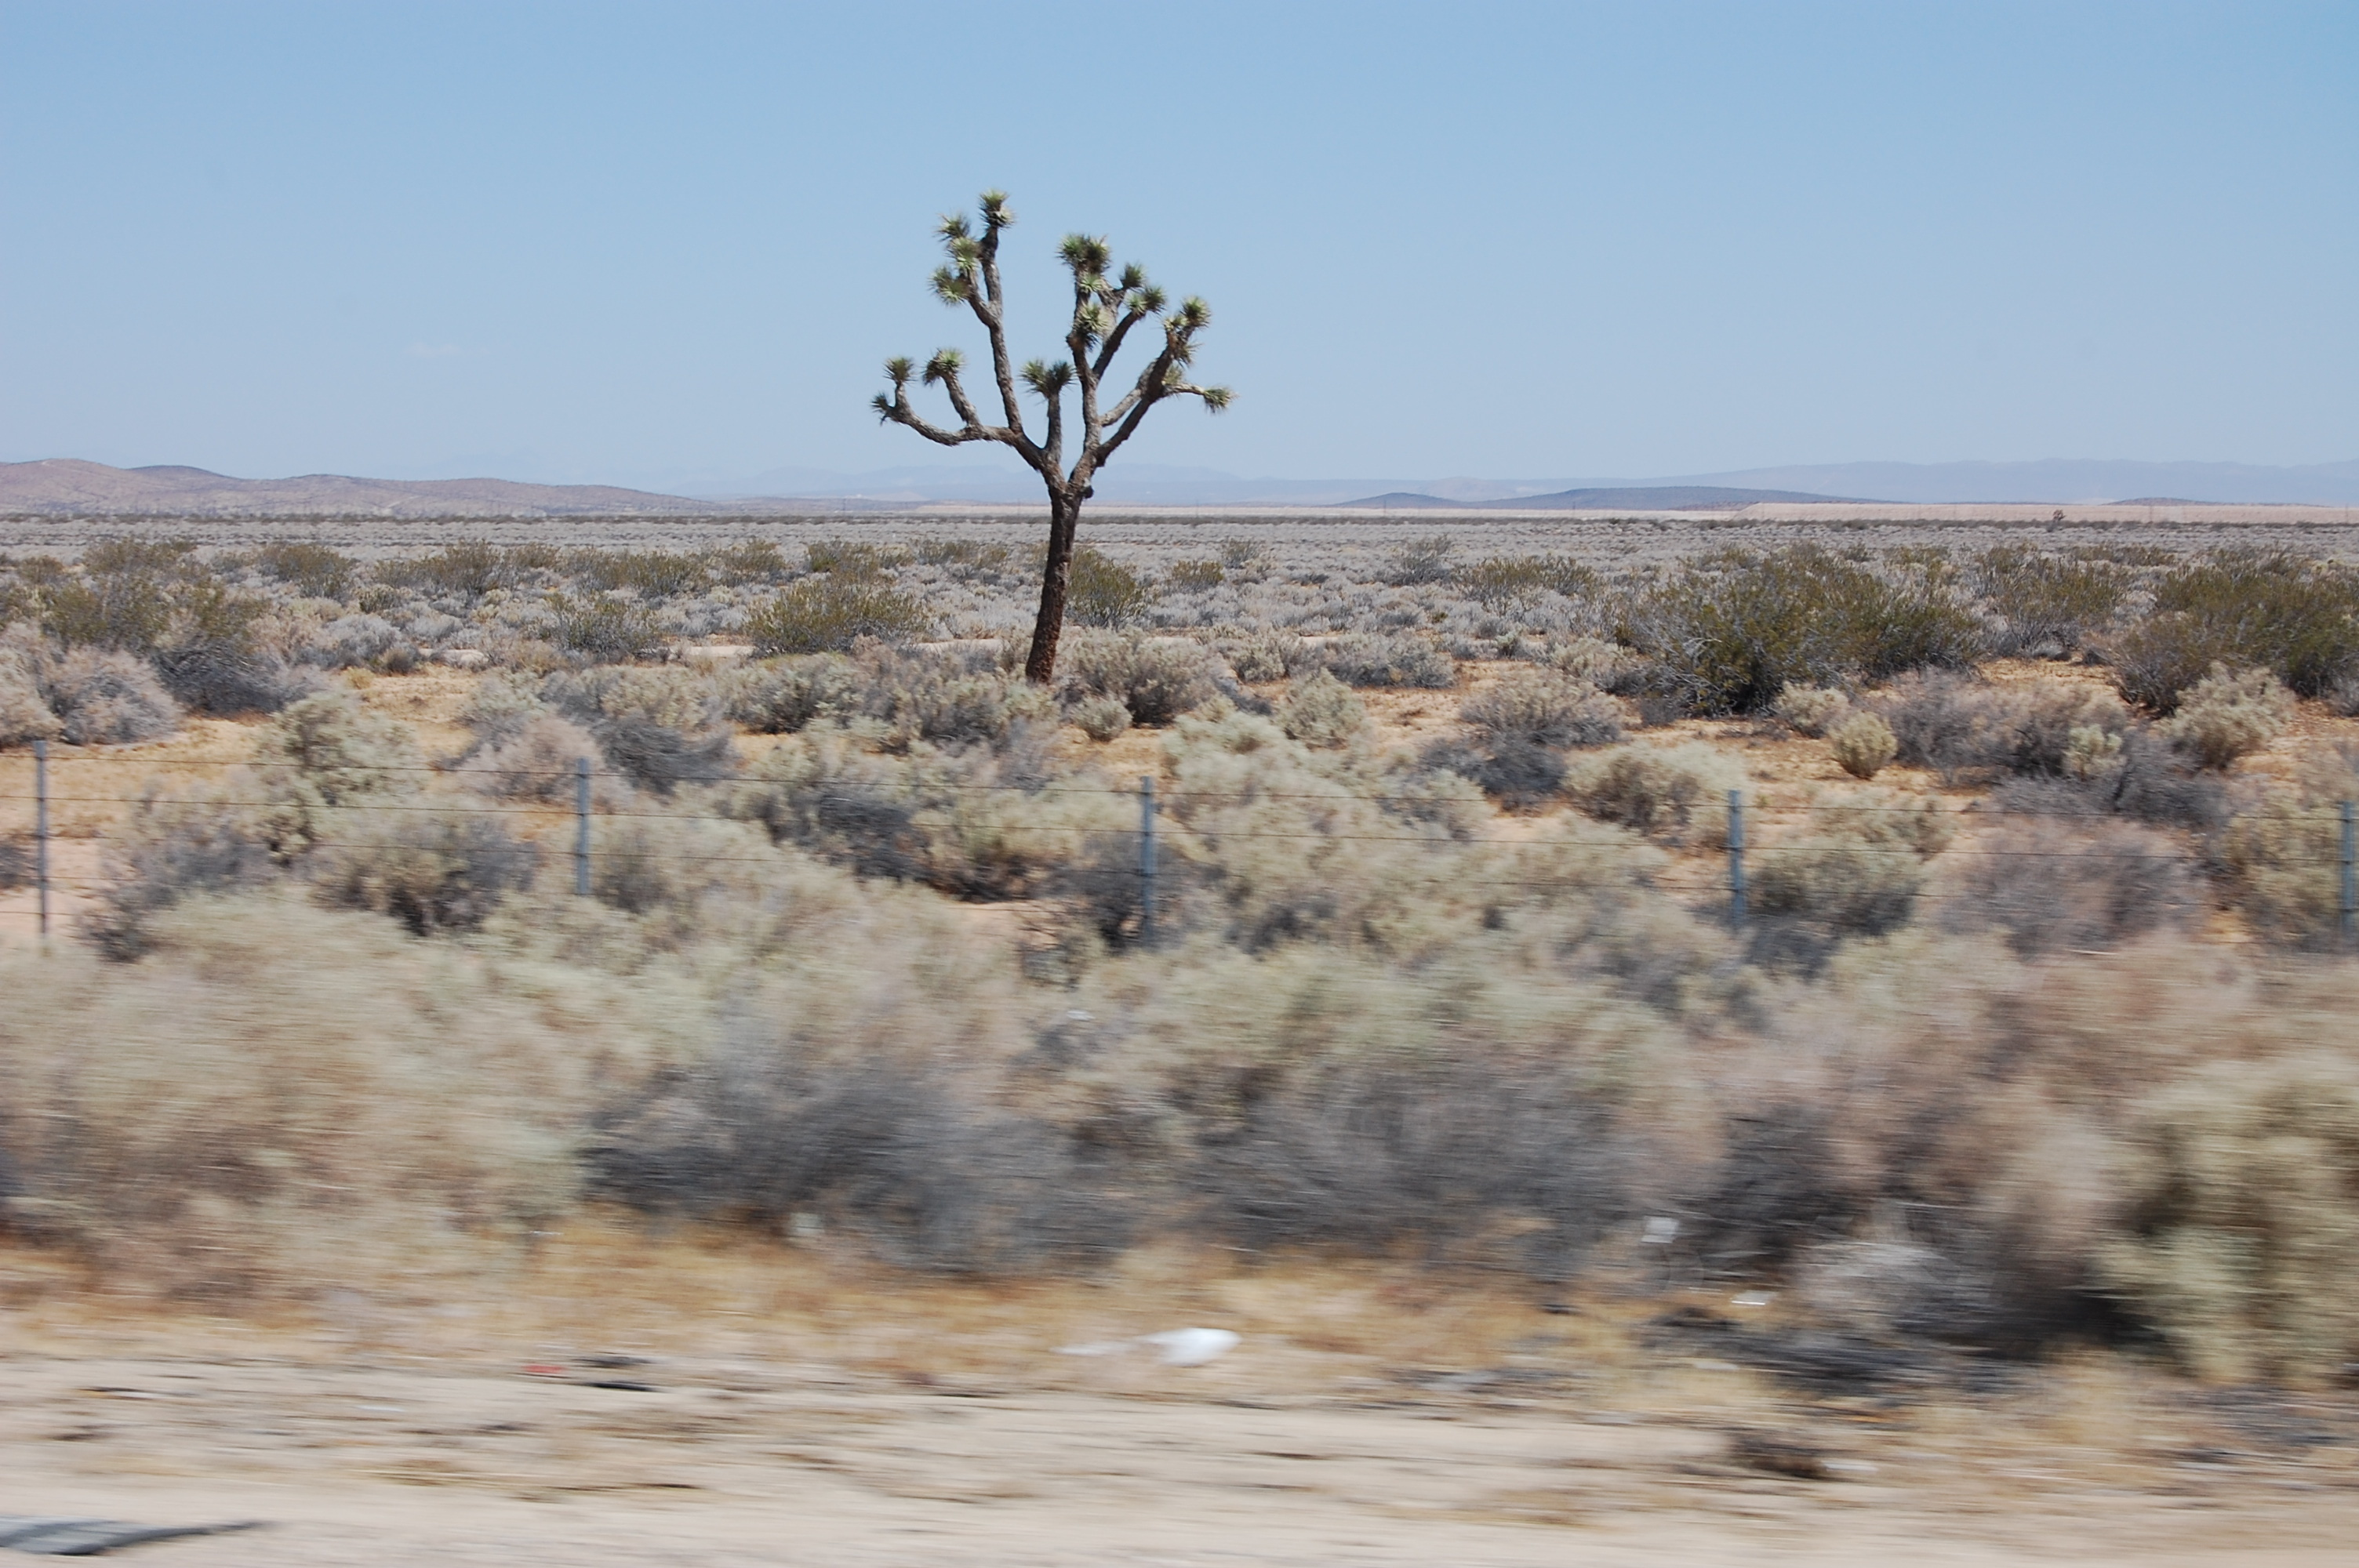 A Joshua tree in the Arizona desert